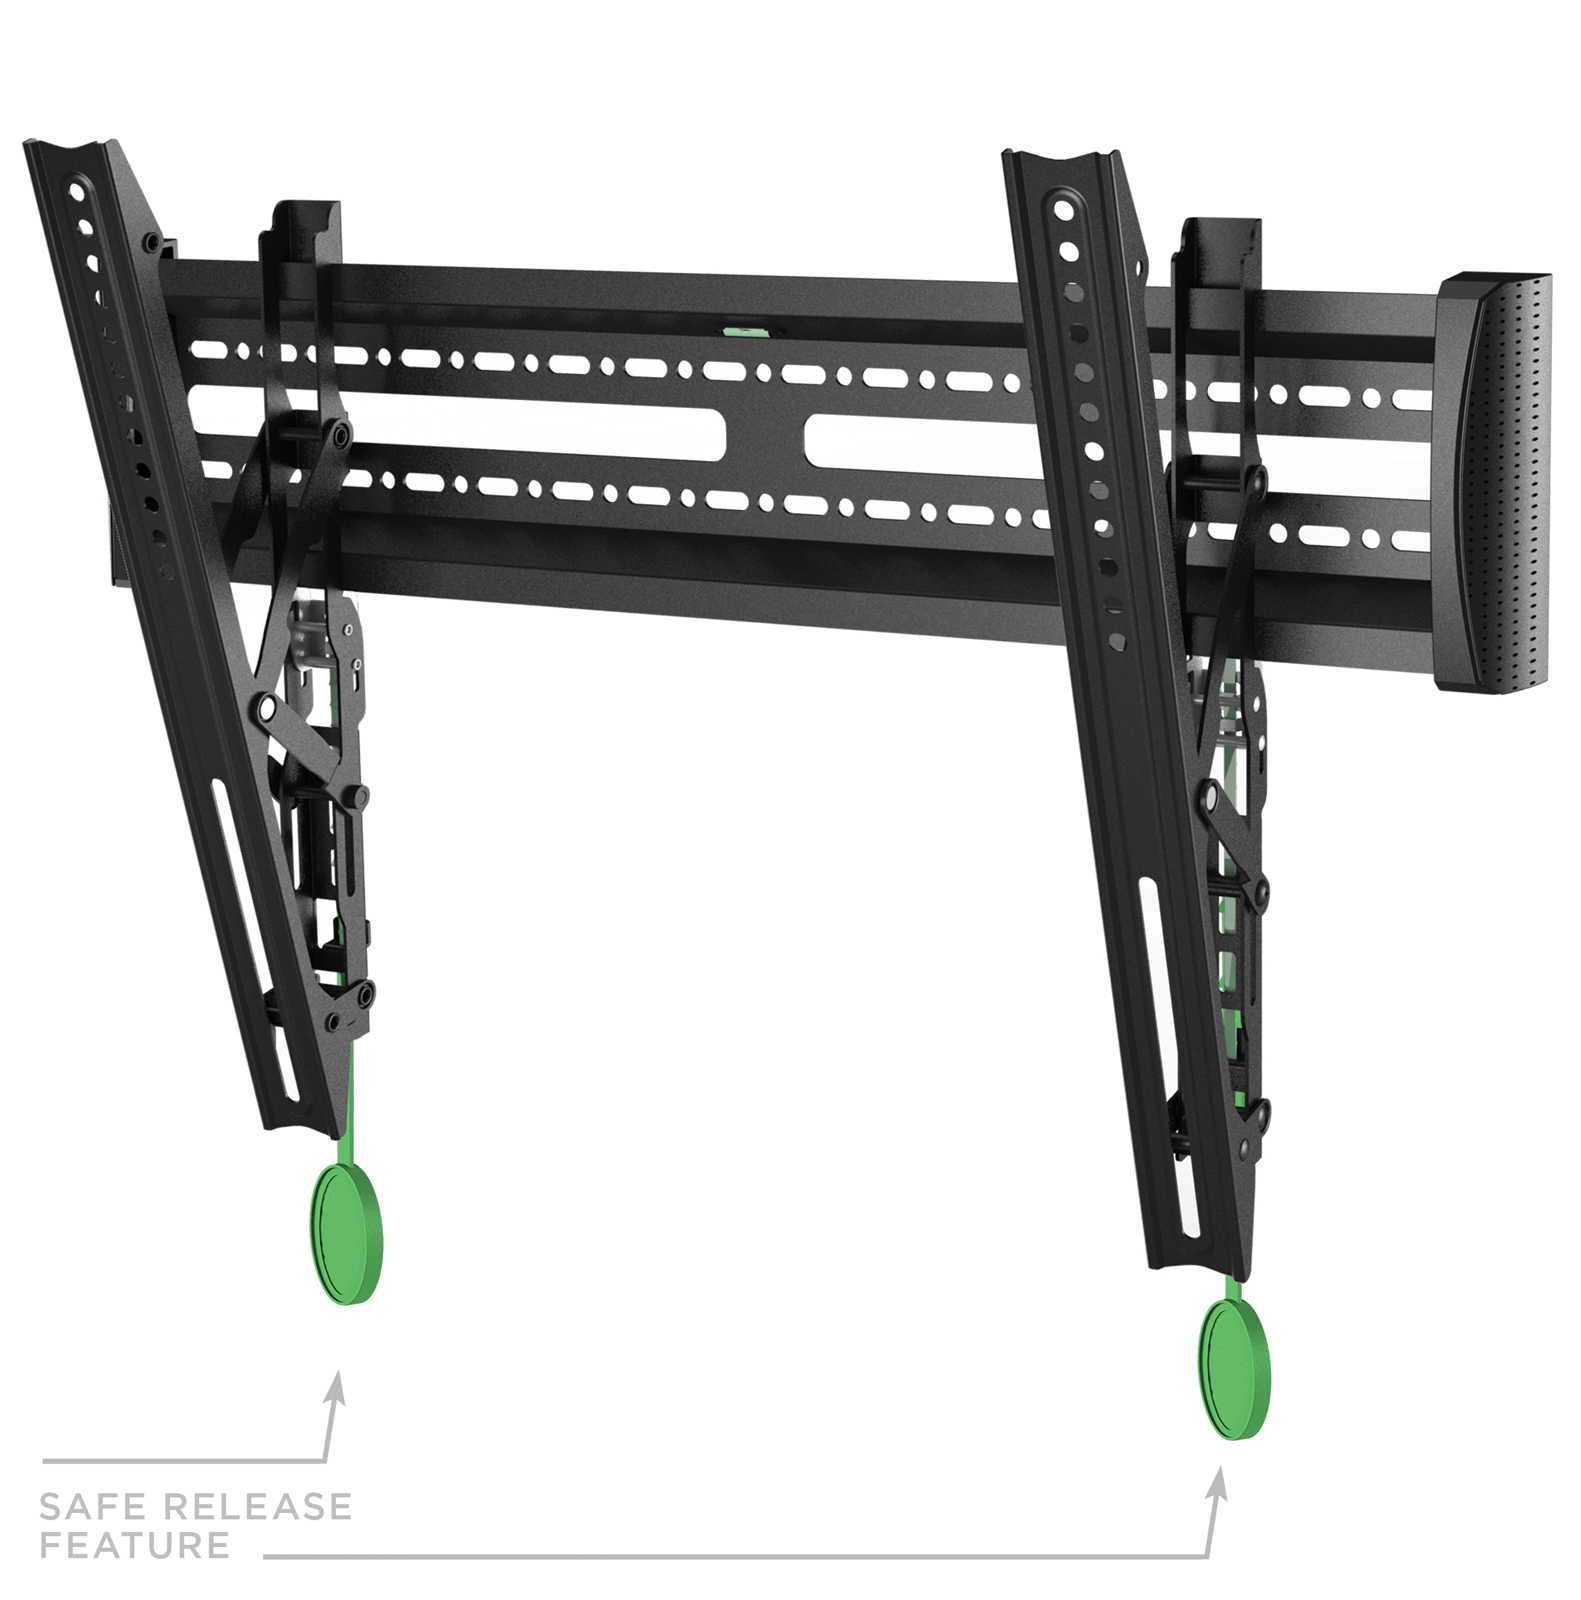 MOUNT FACTORY Universal Tilting Low Profile TV Wall Mount Bracket for 32-65 inch TV by Mount Factory